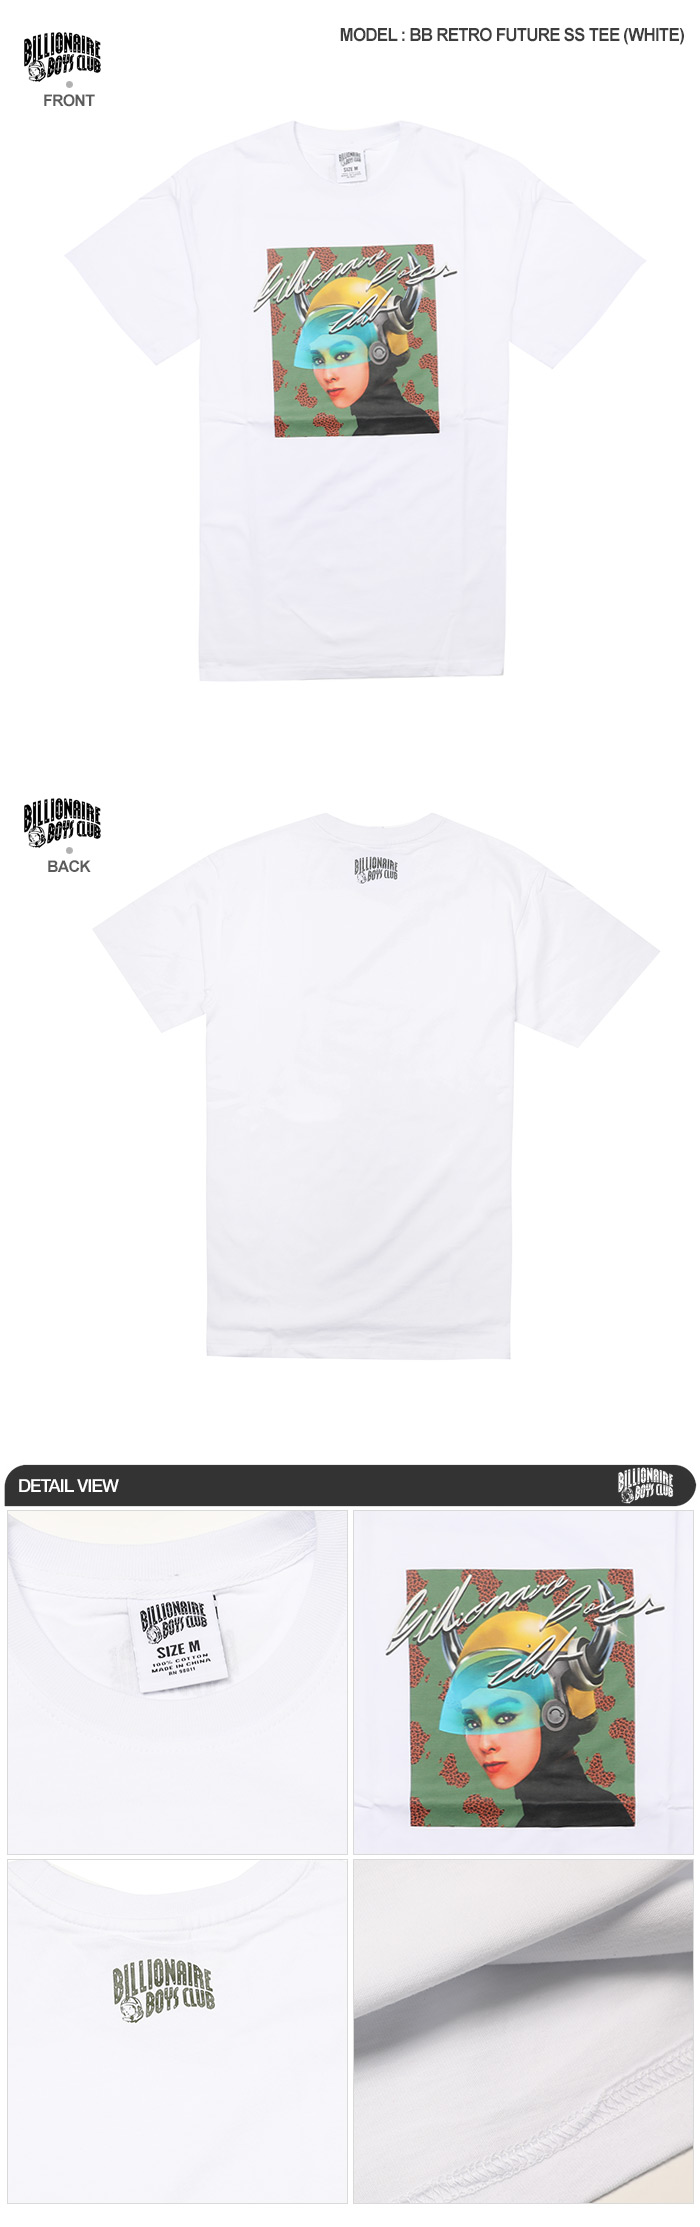 [빌리네어 보이즈 클럽] BB RETRO FUTURE SS TEE (WHITE) [881-4206-WHT]